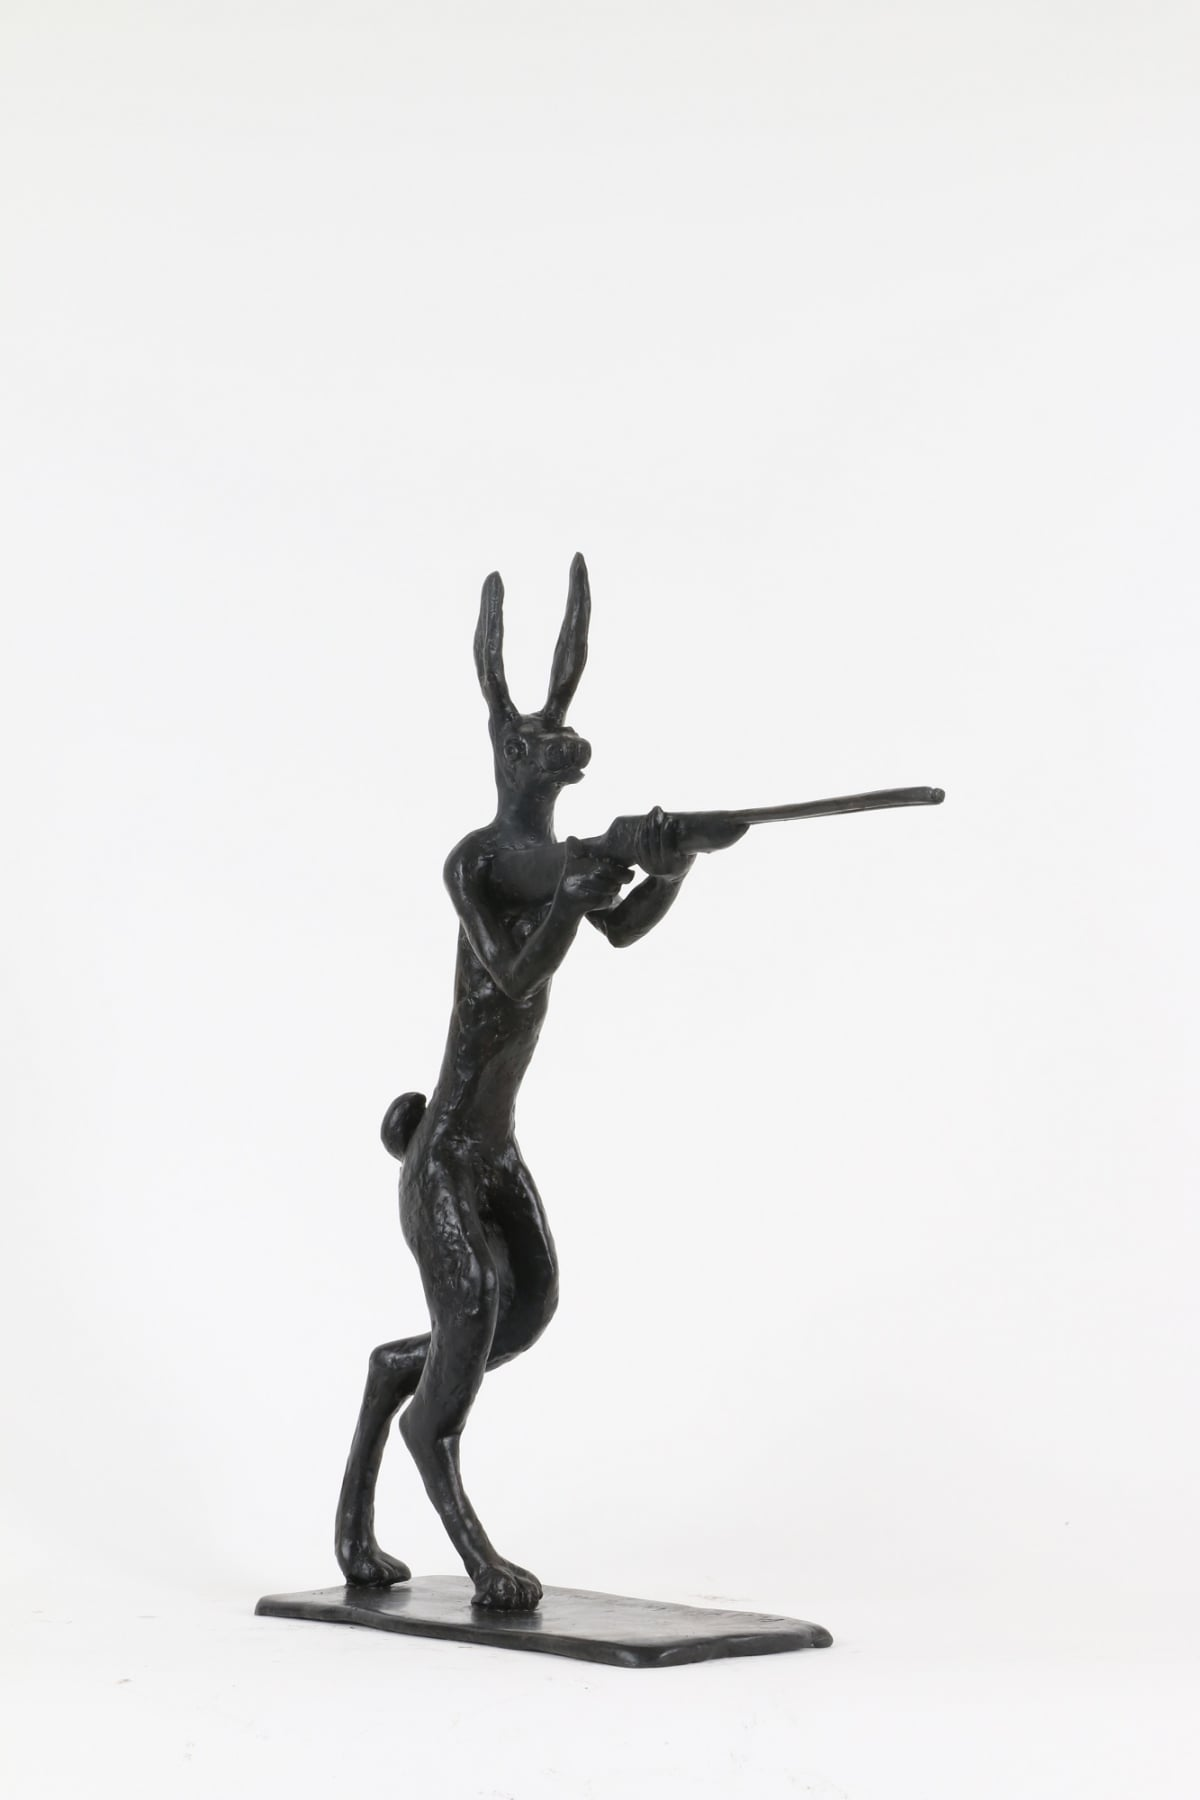 Paul DIBBLE Rabbit Fights Back [Larger Model], 2016 Cast Patinated Bronze 17.7 x 15.7 x 4.7 in 45 x 40 x 12 cm #6/10